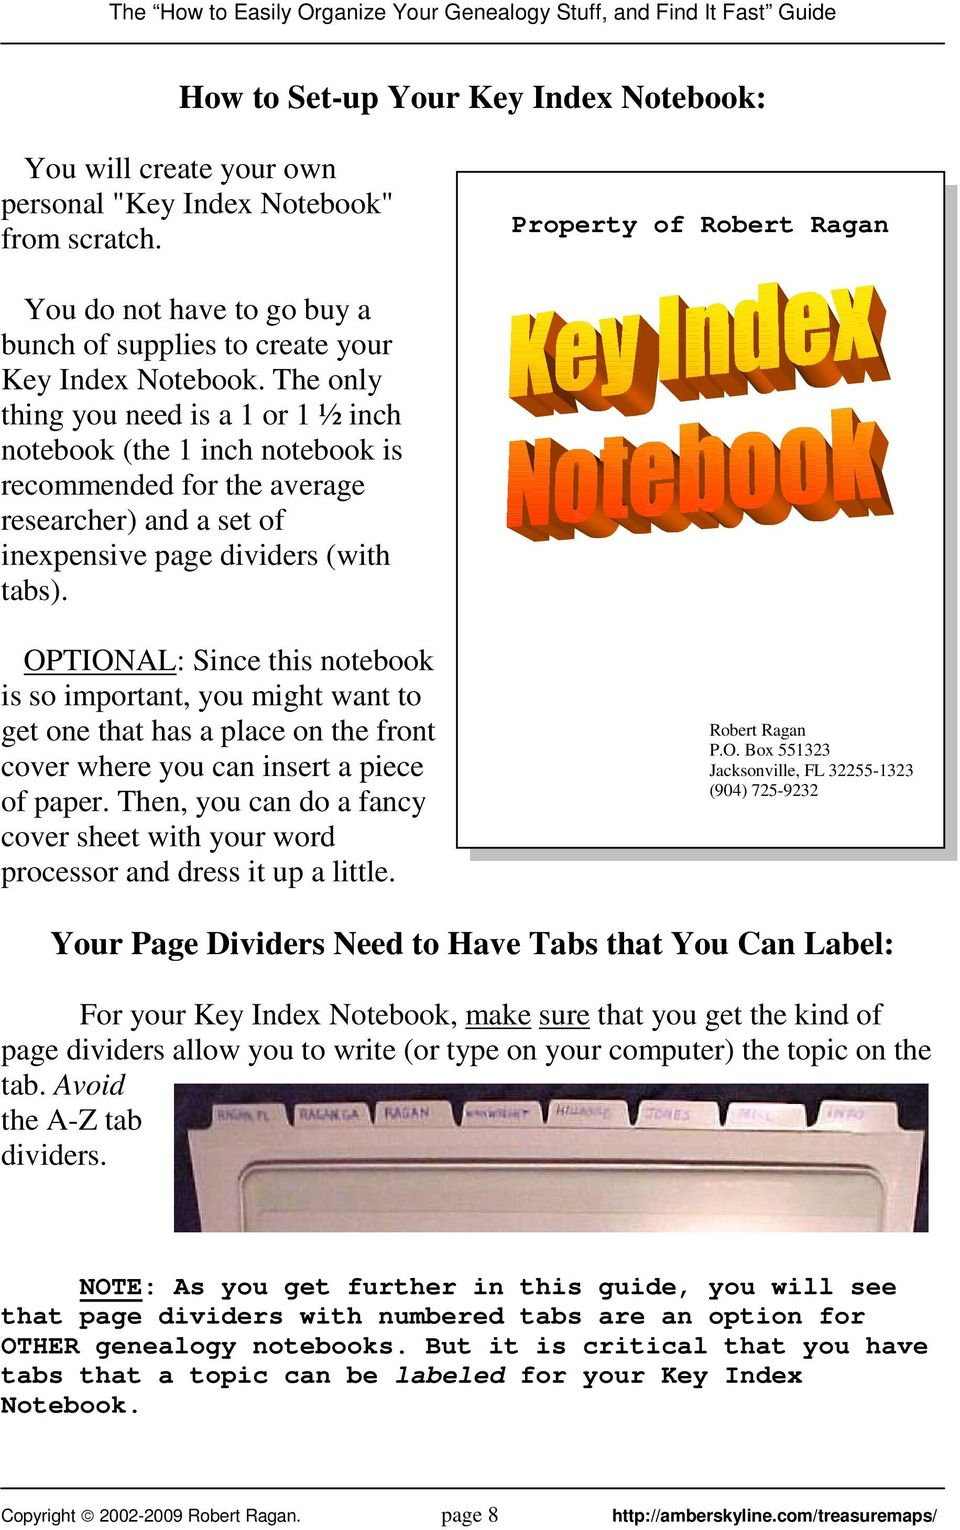 The only thing you need is a 1 or 1 ½ inch notebook (the 1 inch notebook is recommended for the average researcher) and a set of inexpensive page dividers (with tabs).